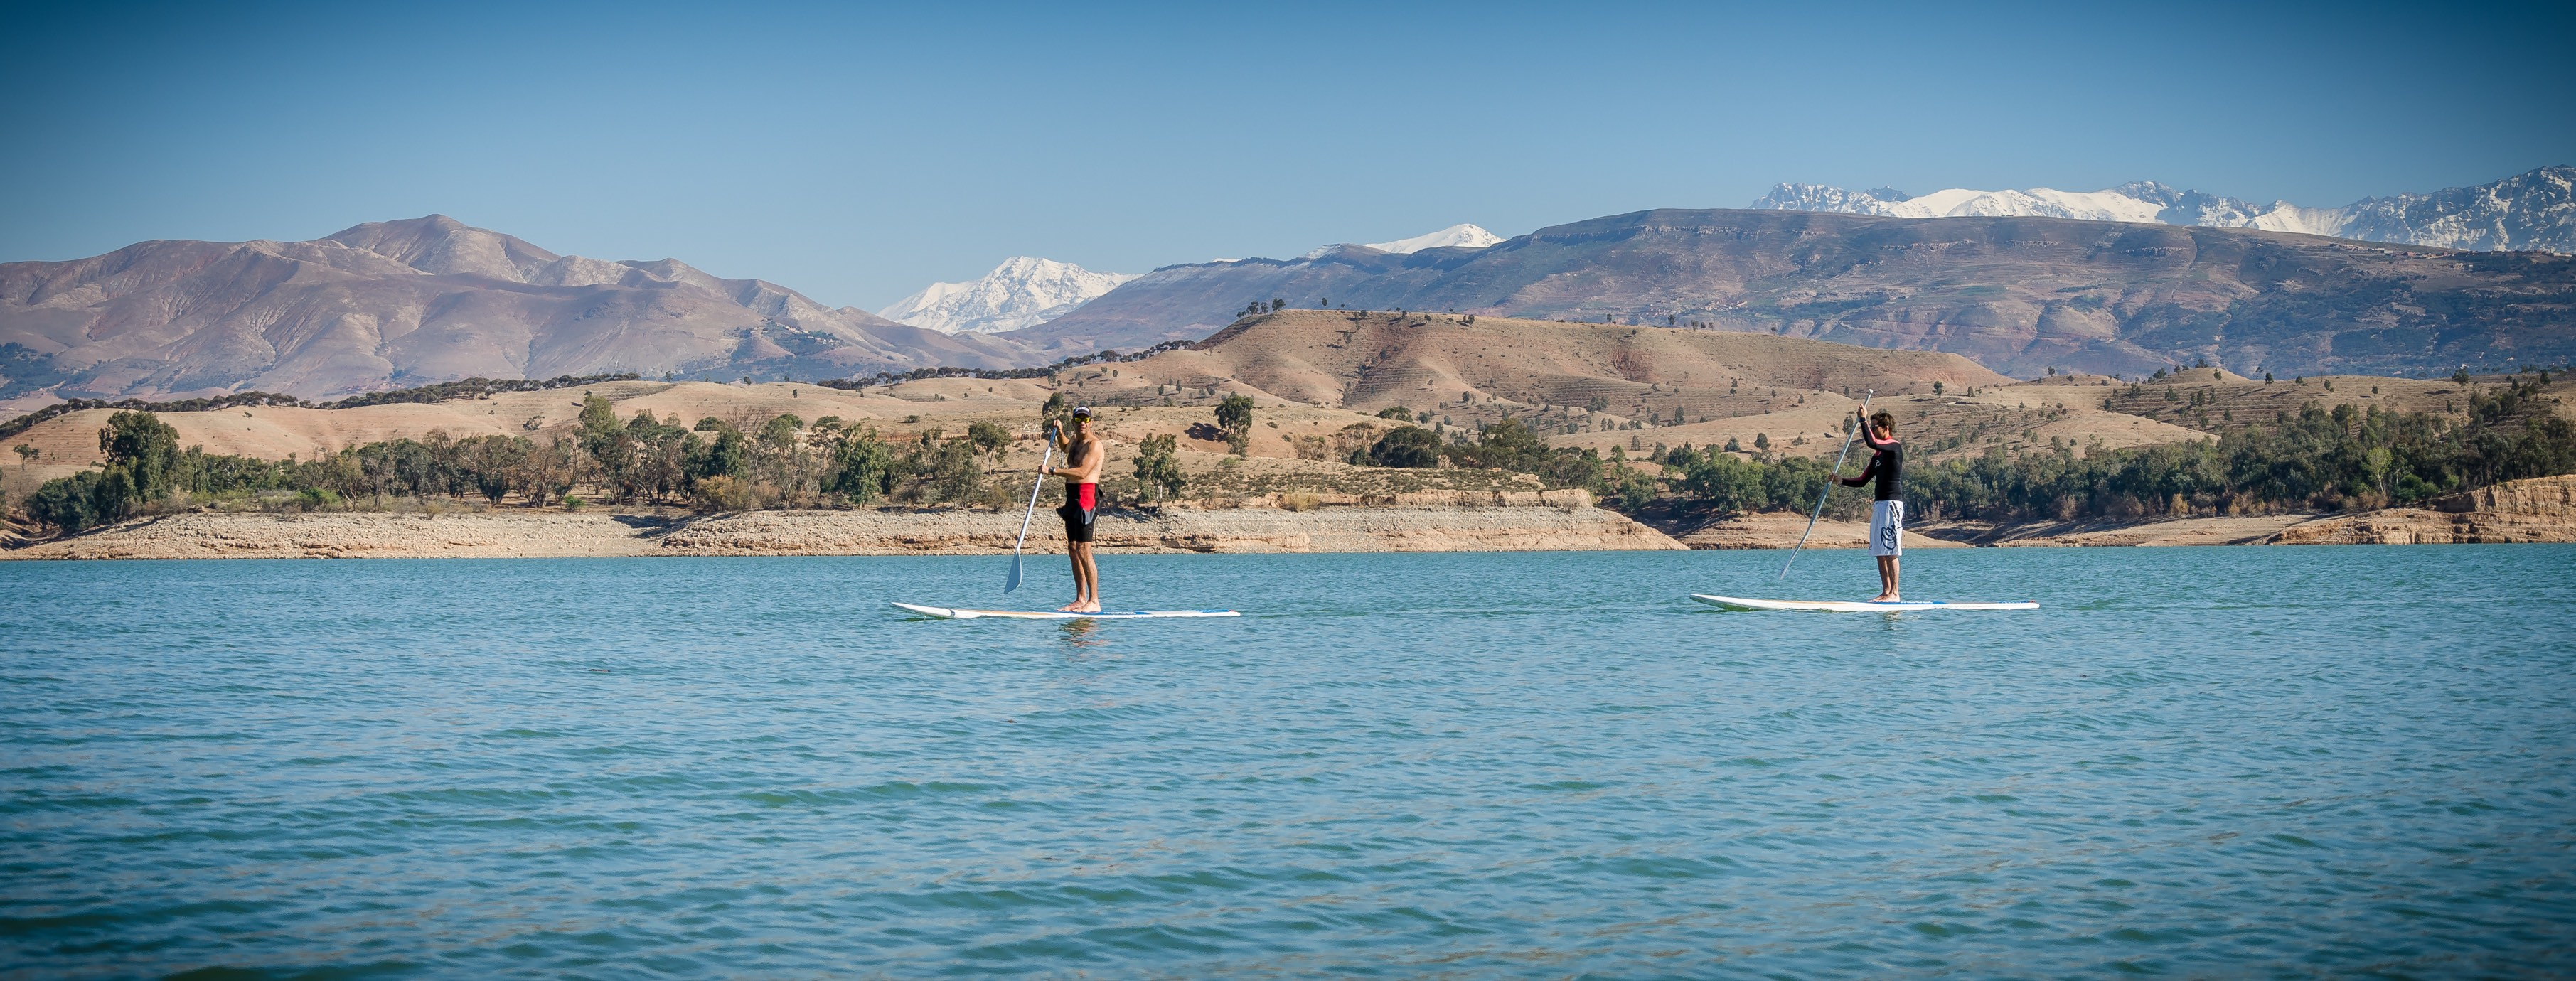 picture of two people kyaking with the montains in the background